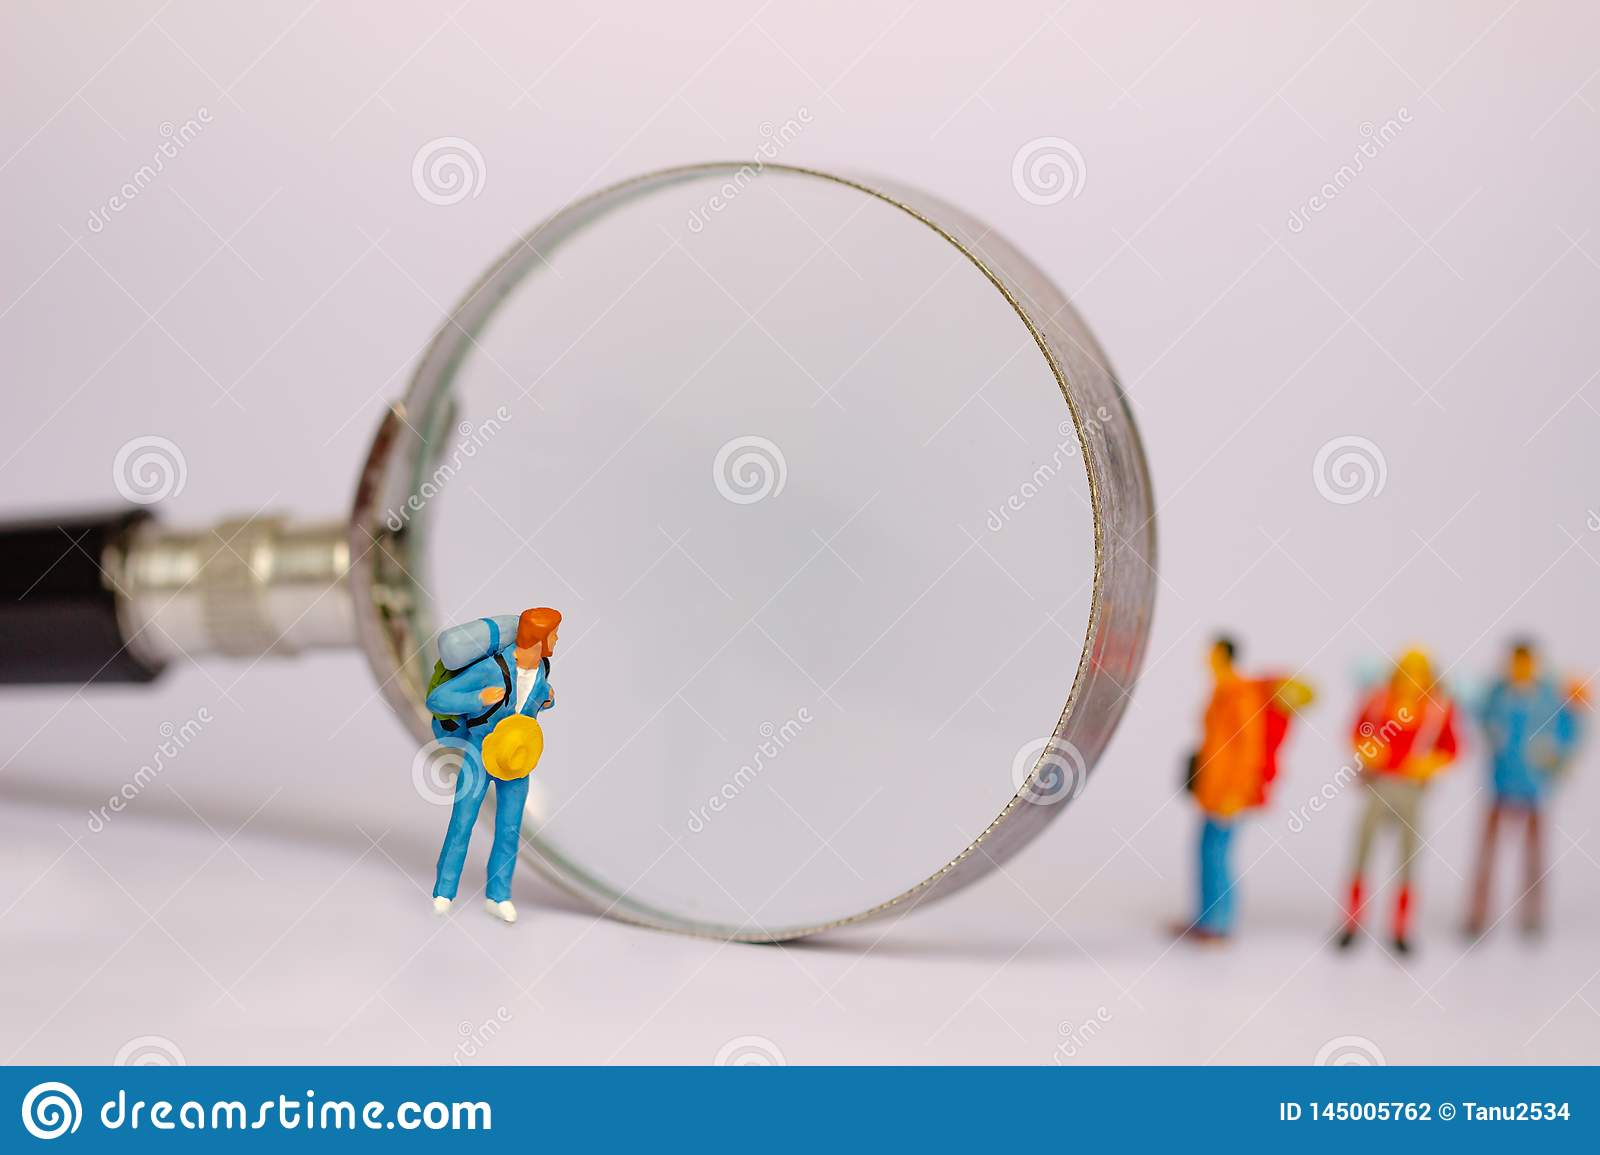 Group of tourists and magnifier isolated on white background. Travelling concepts.